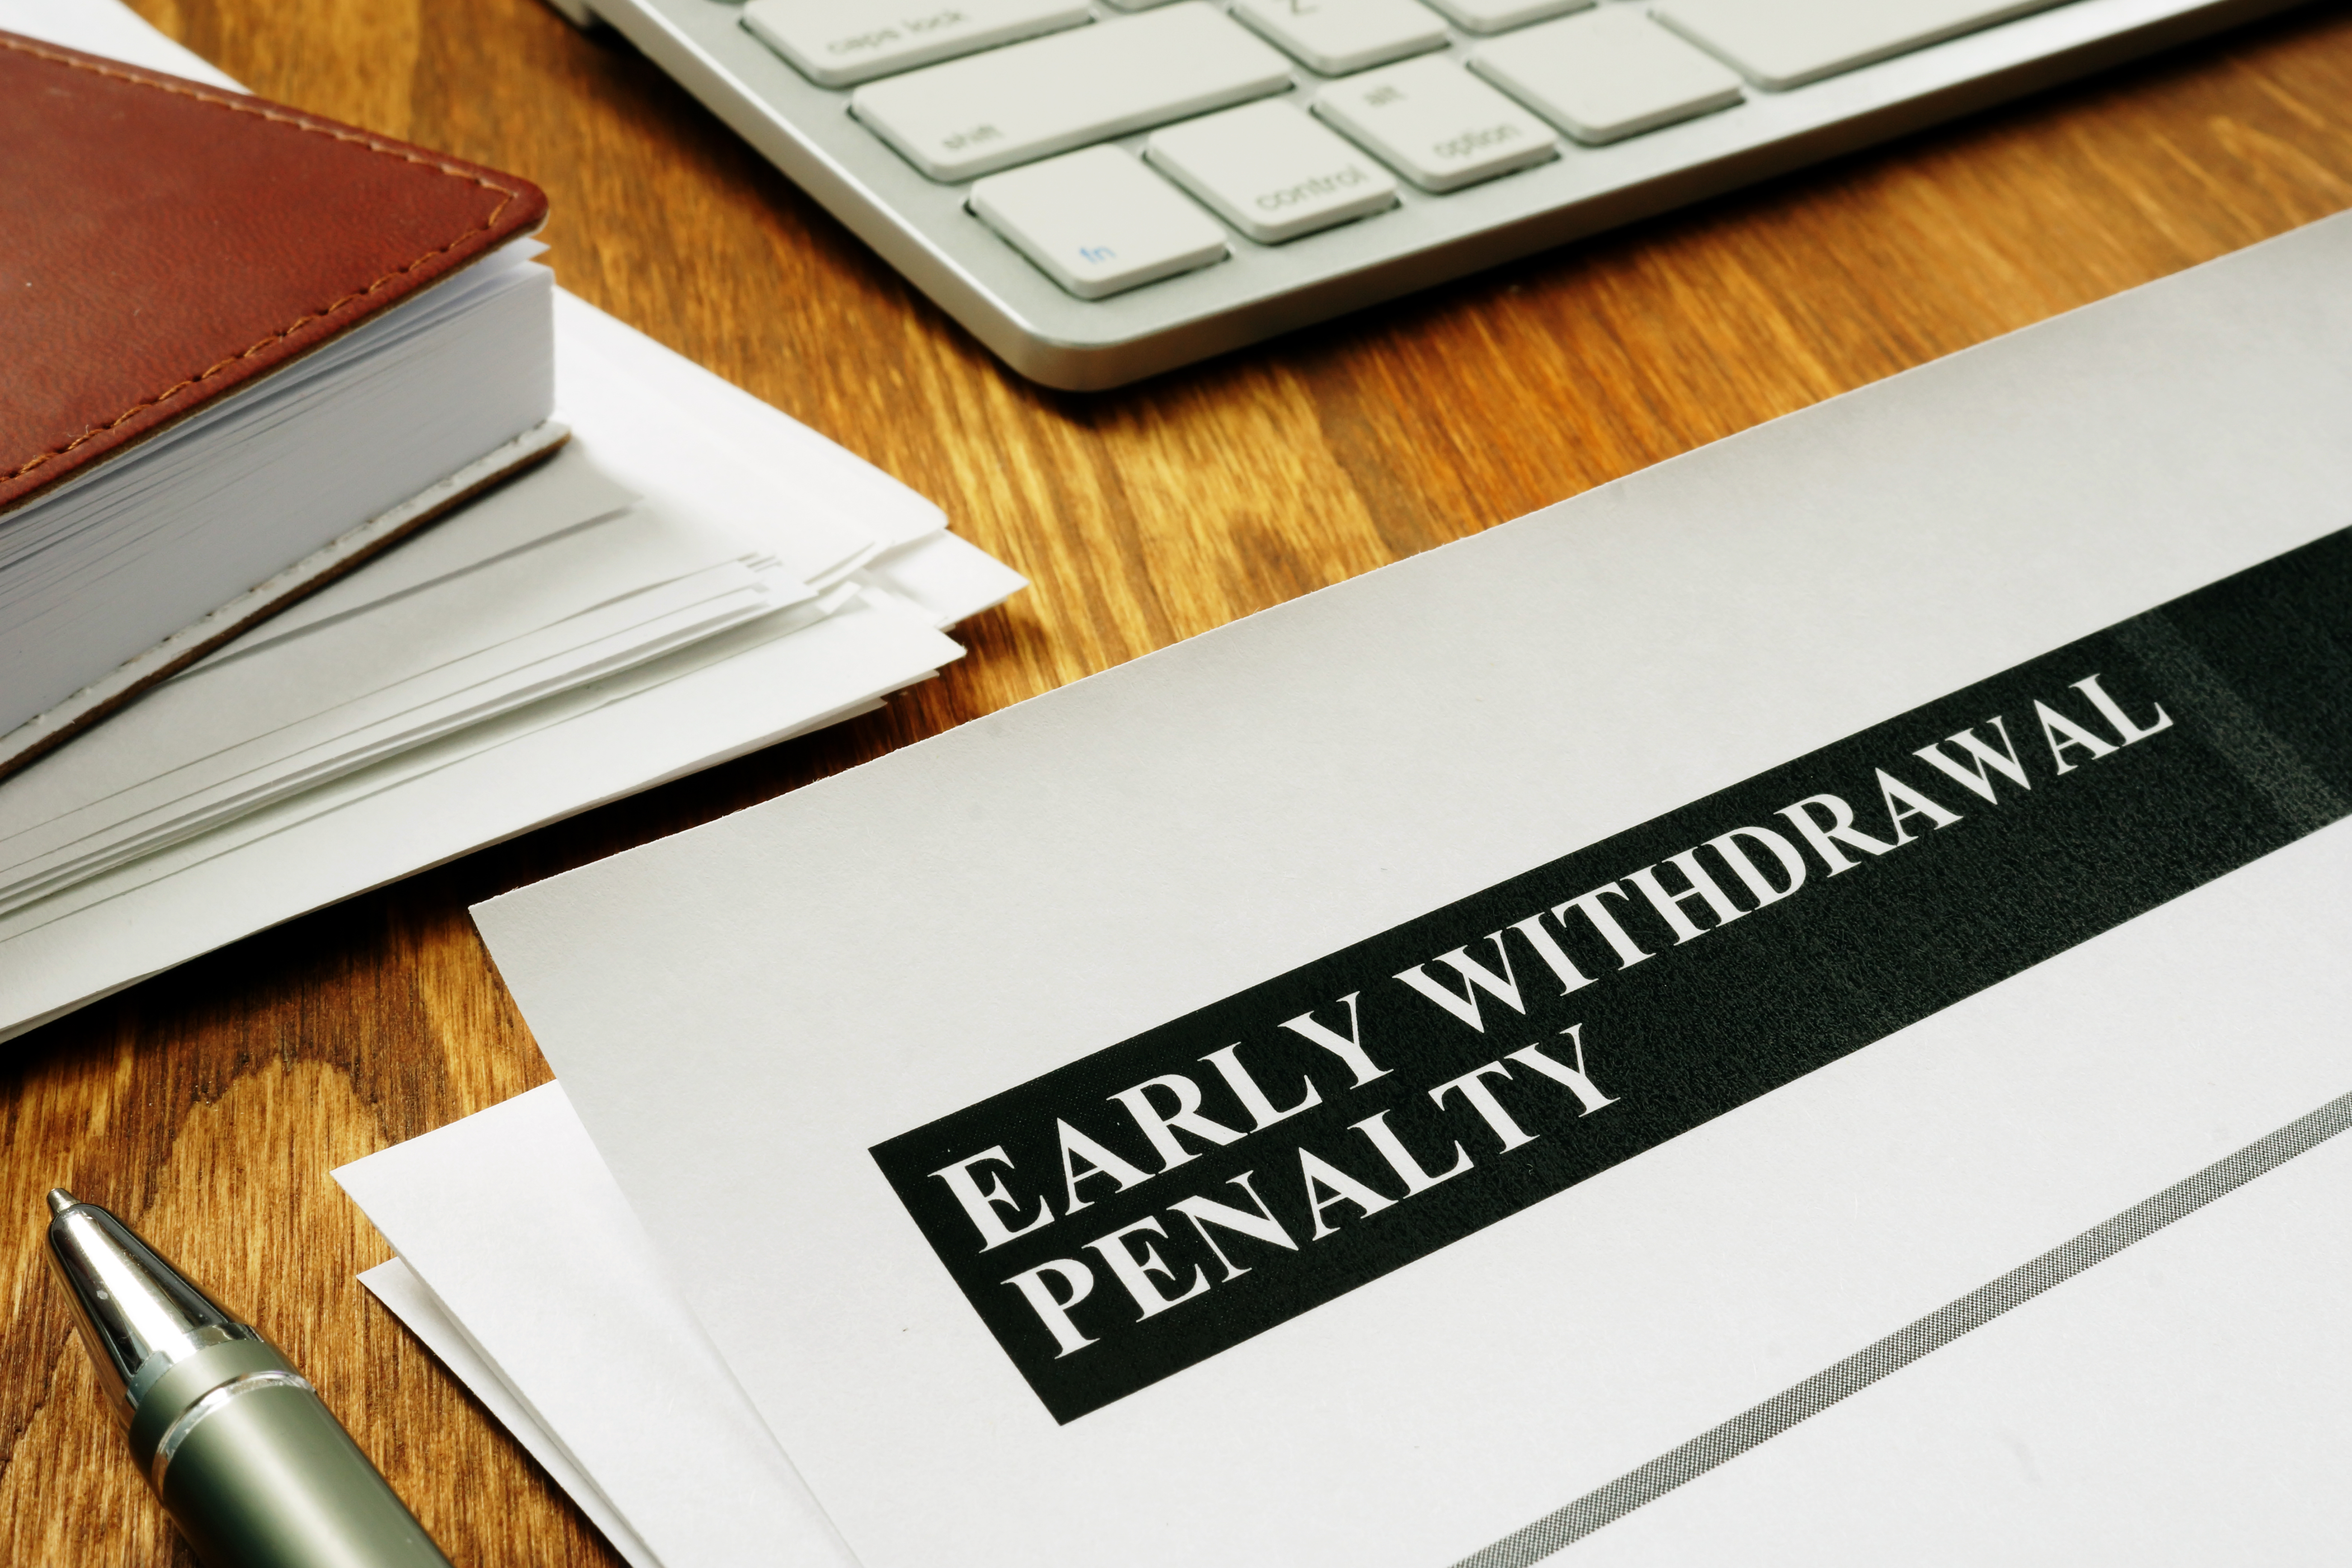 Early withdrawal penalty letter on the desk.